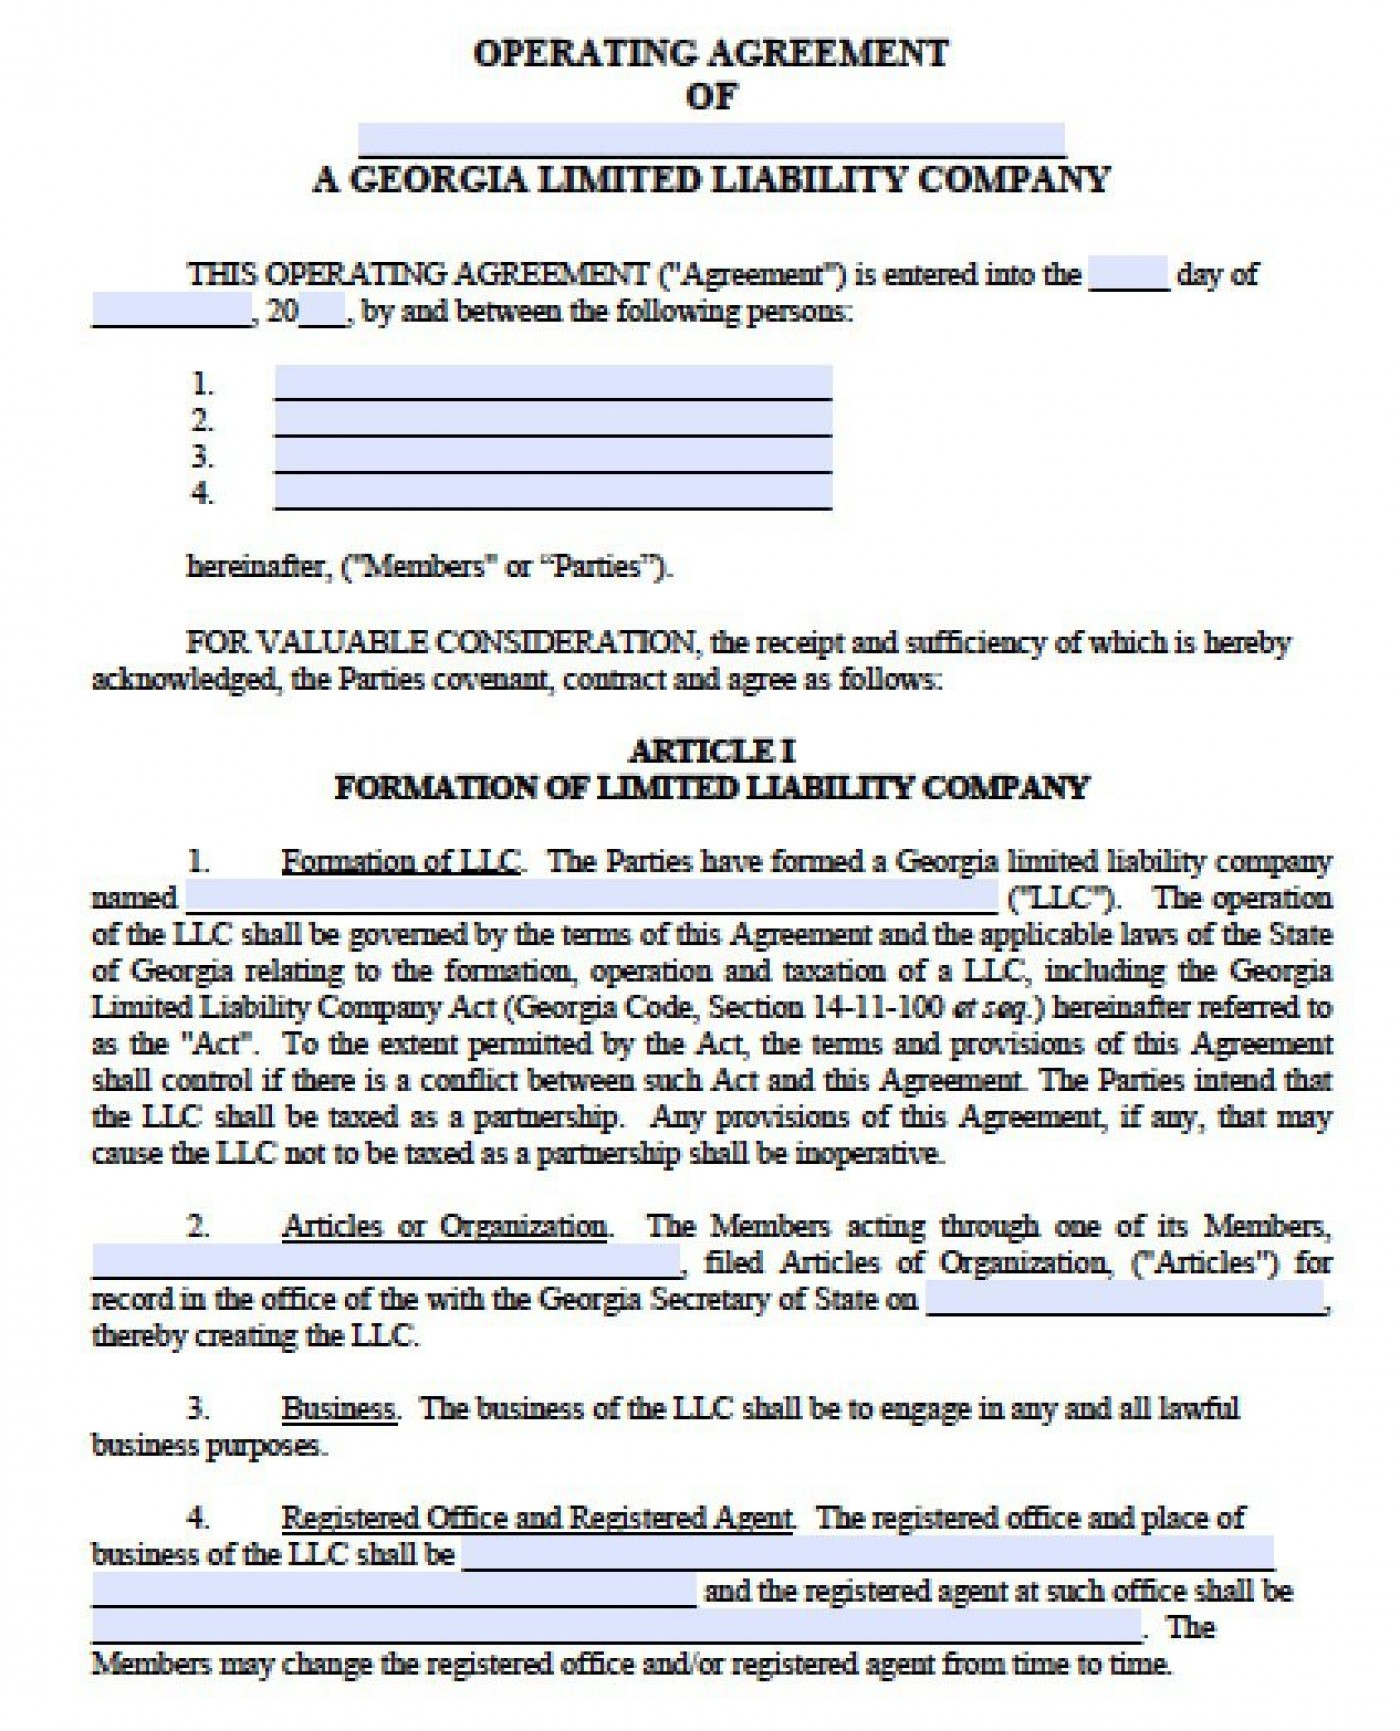 003 Fearsome Operation Agreement Llc Template Highest Quality  Operating Florida Indiana Single Member California1400